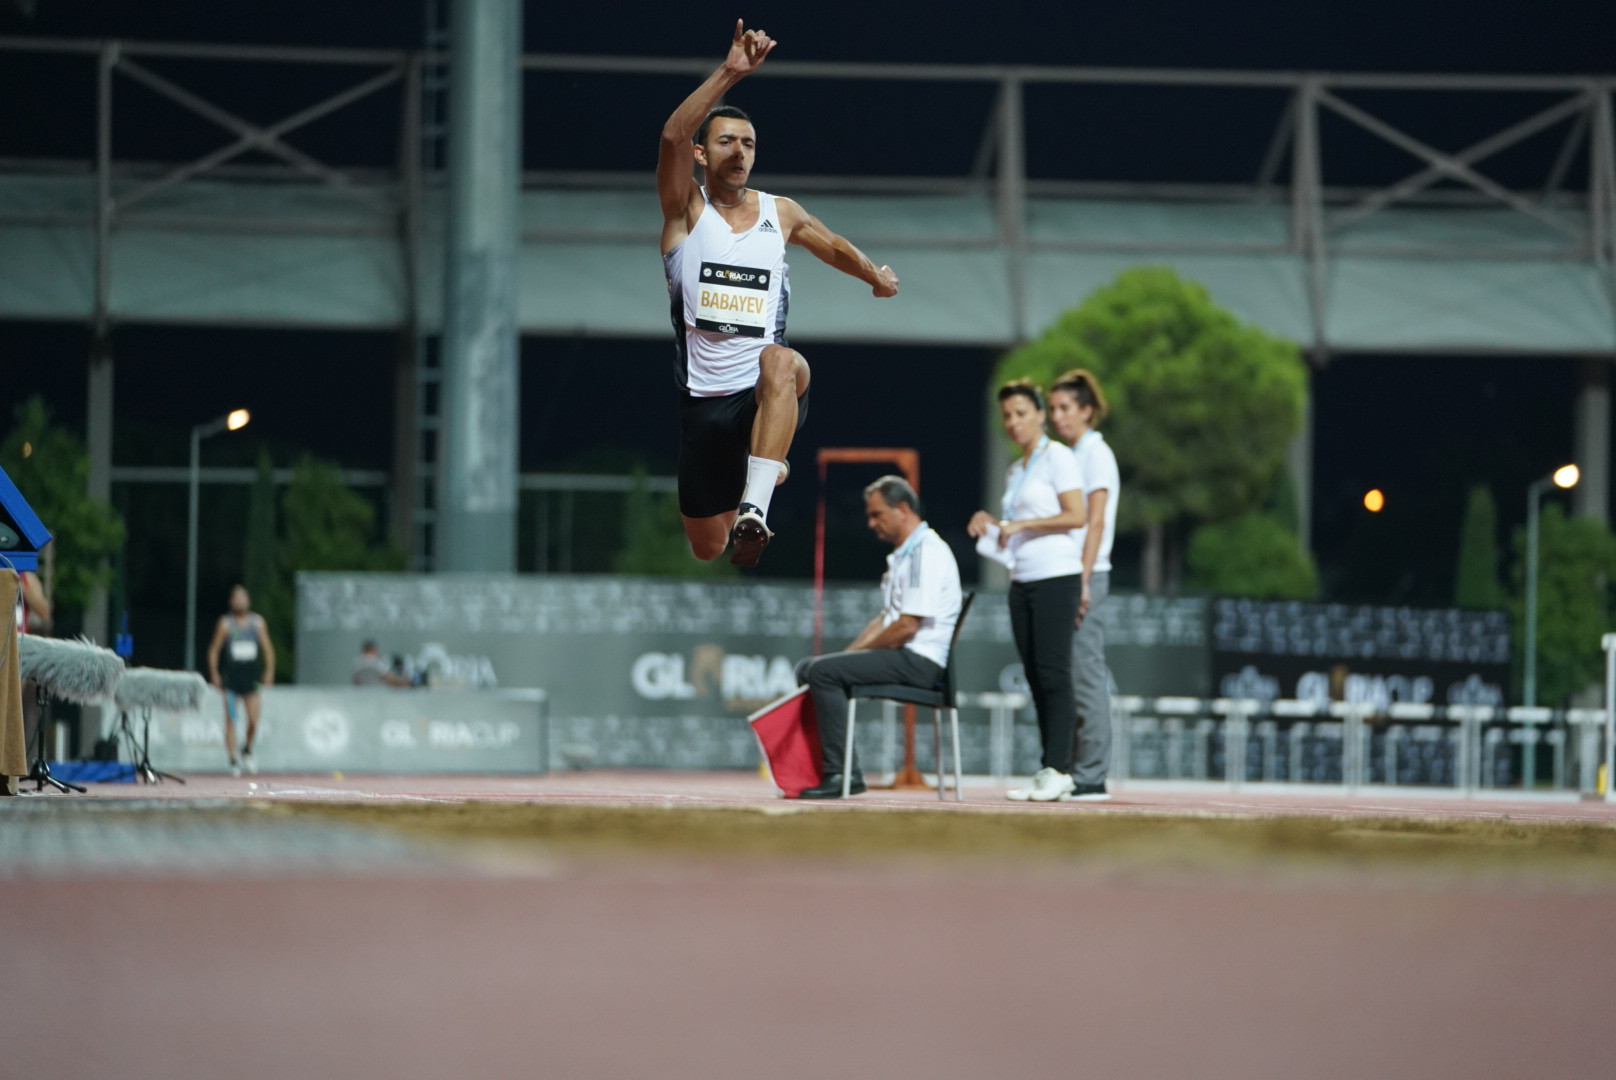 Nazim Babayev from Azerbaijan in action during the men's triple jump ©GSA/ Mine Kasapoglu